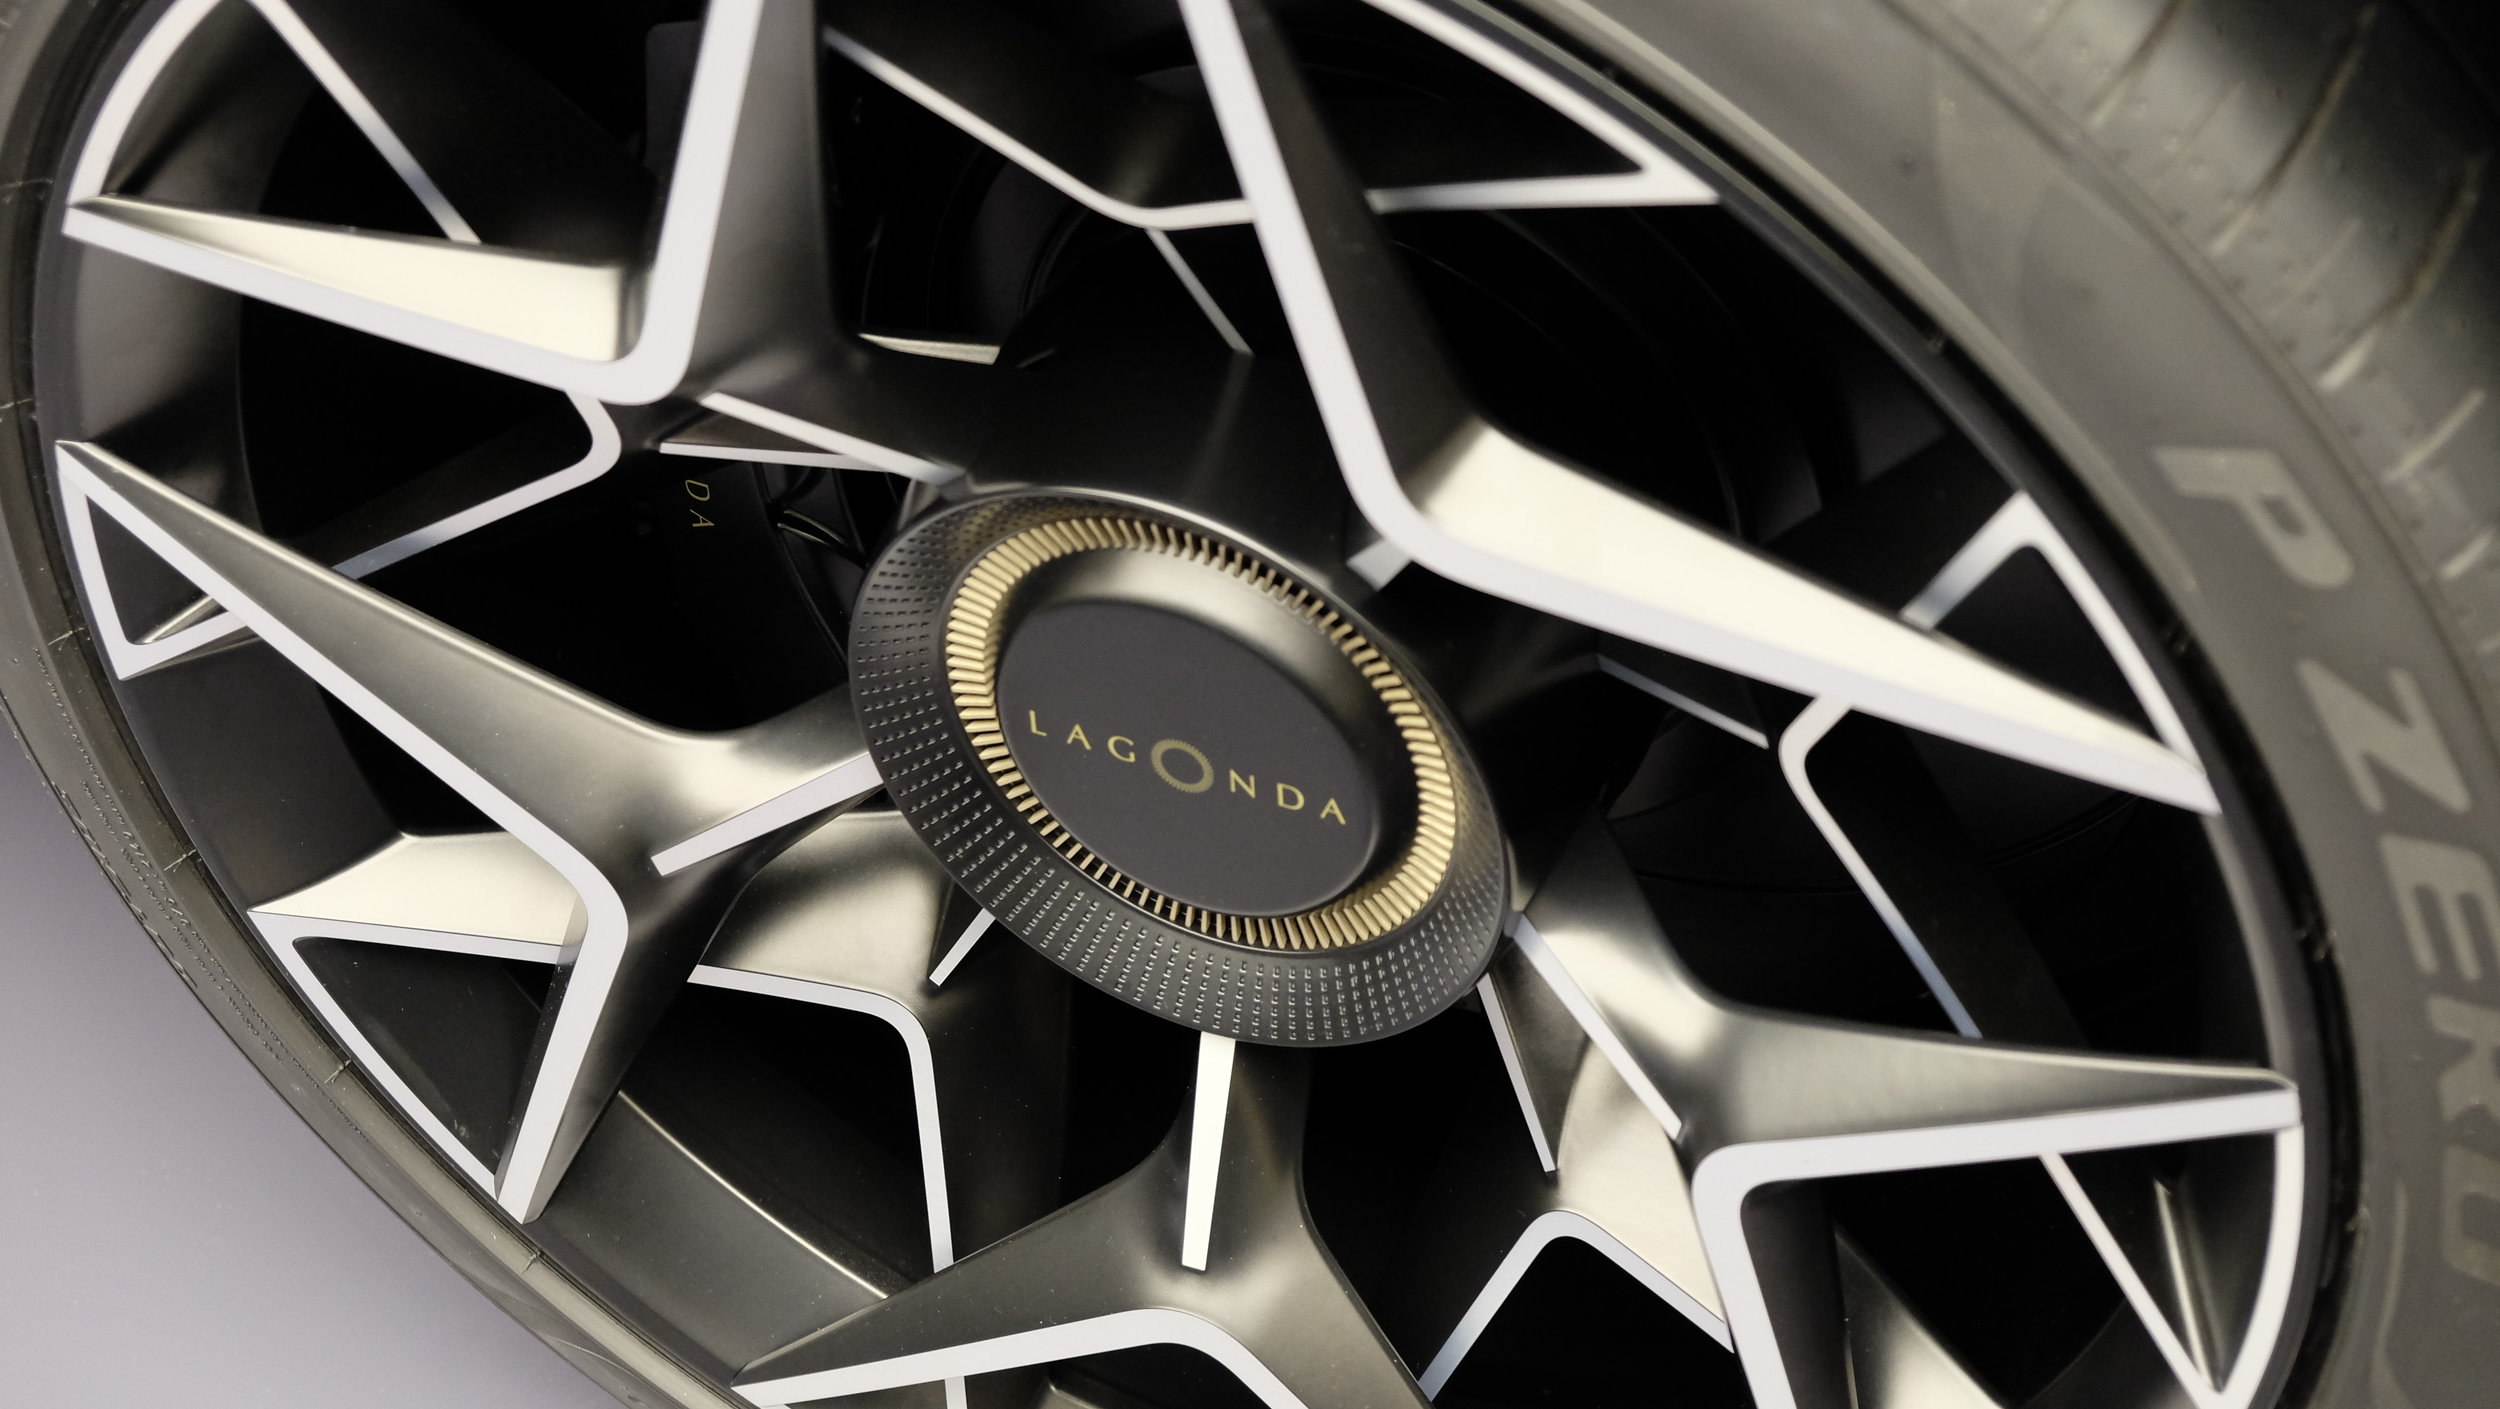 An intricate play of spokes and colors, the Lagonda All-Terrain wheels are a statement of luxury intent